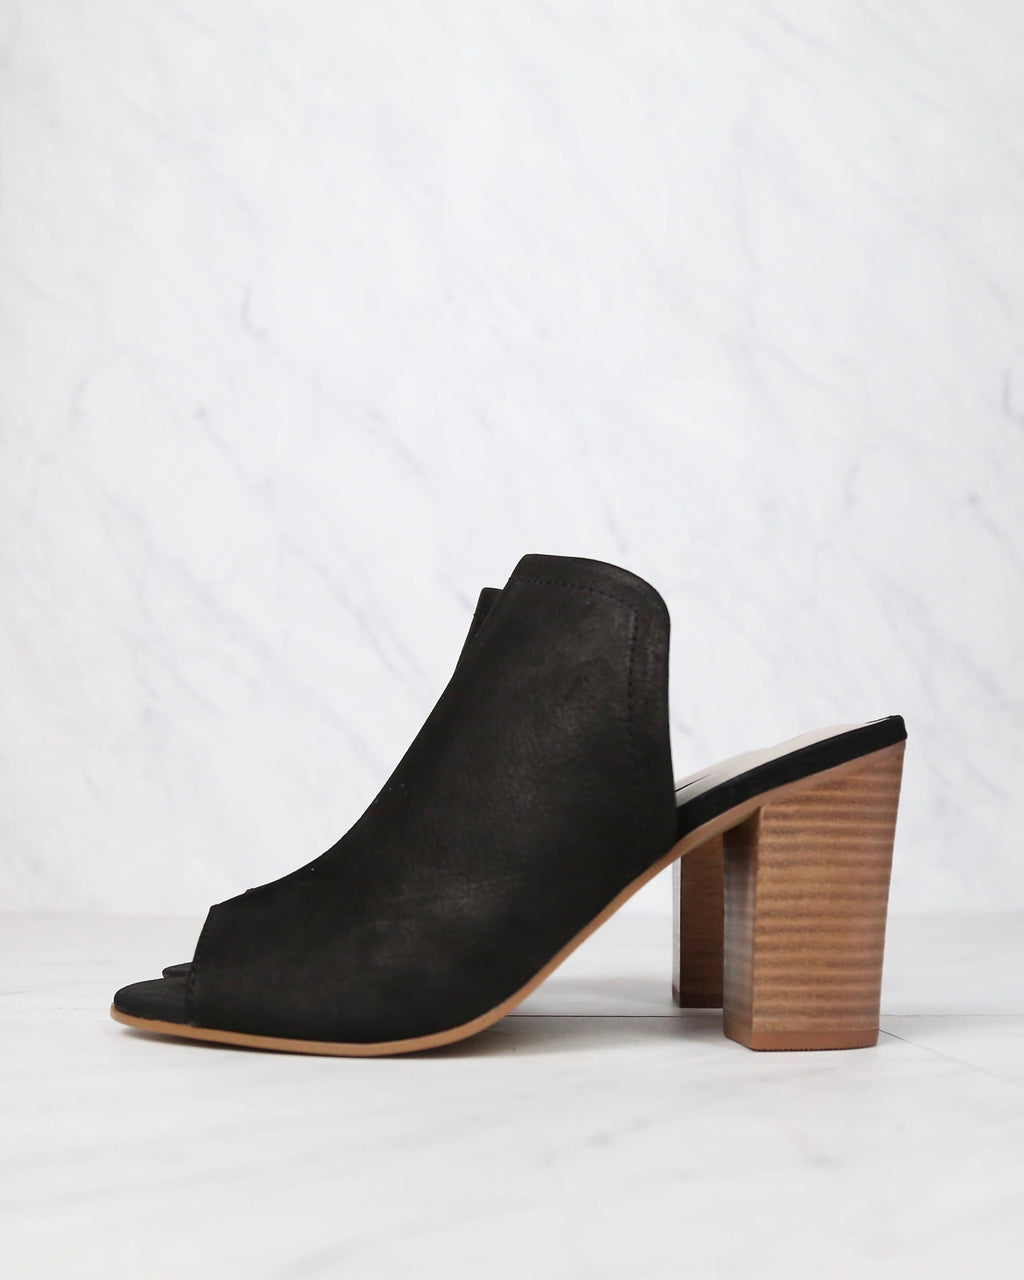 Sbicca - Love Block-Heel Mules in Black